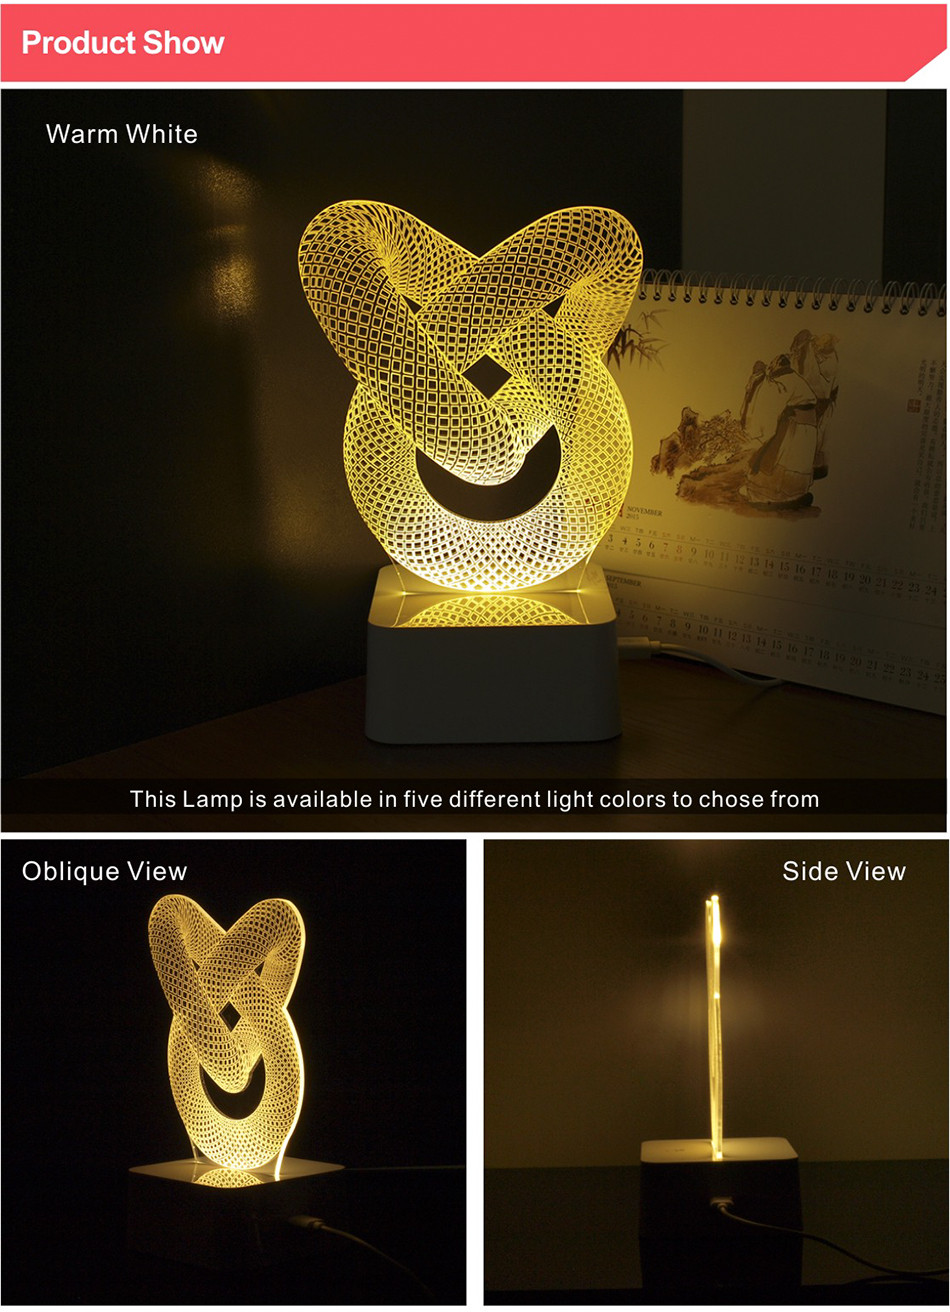 Bulls LED NBA Team 3D Optical Illusion Smart 7 Colors Night Light Table Lamp with USB Power Cable